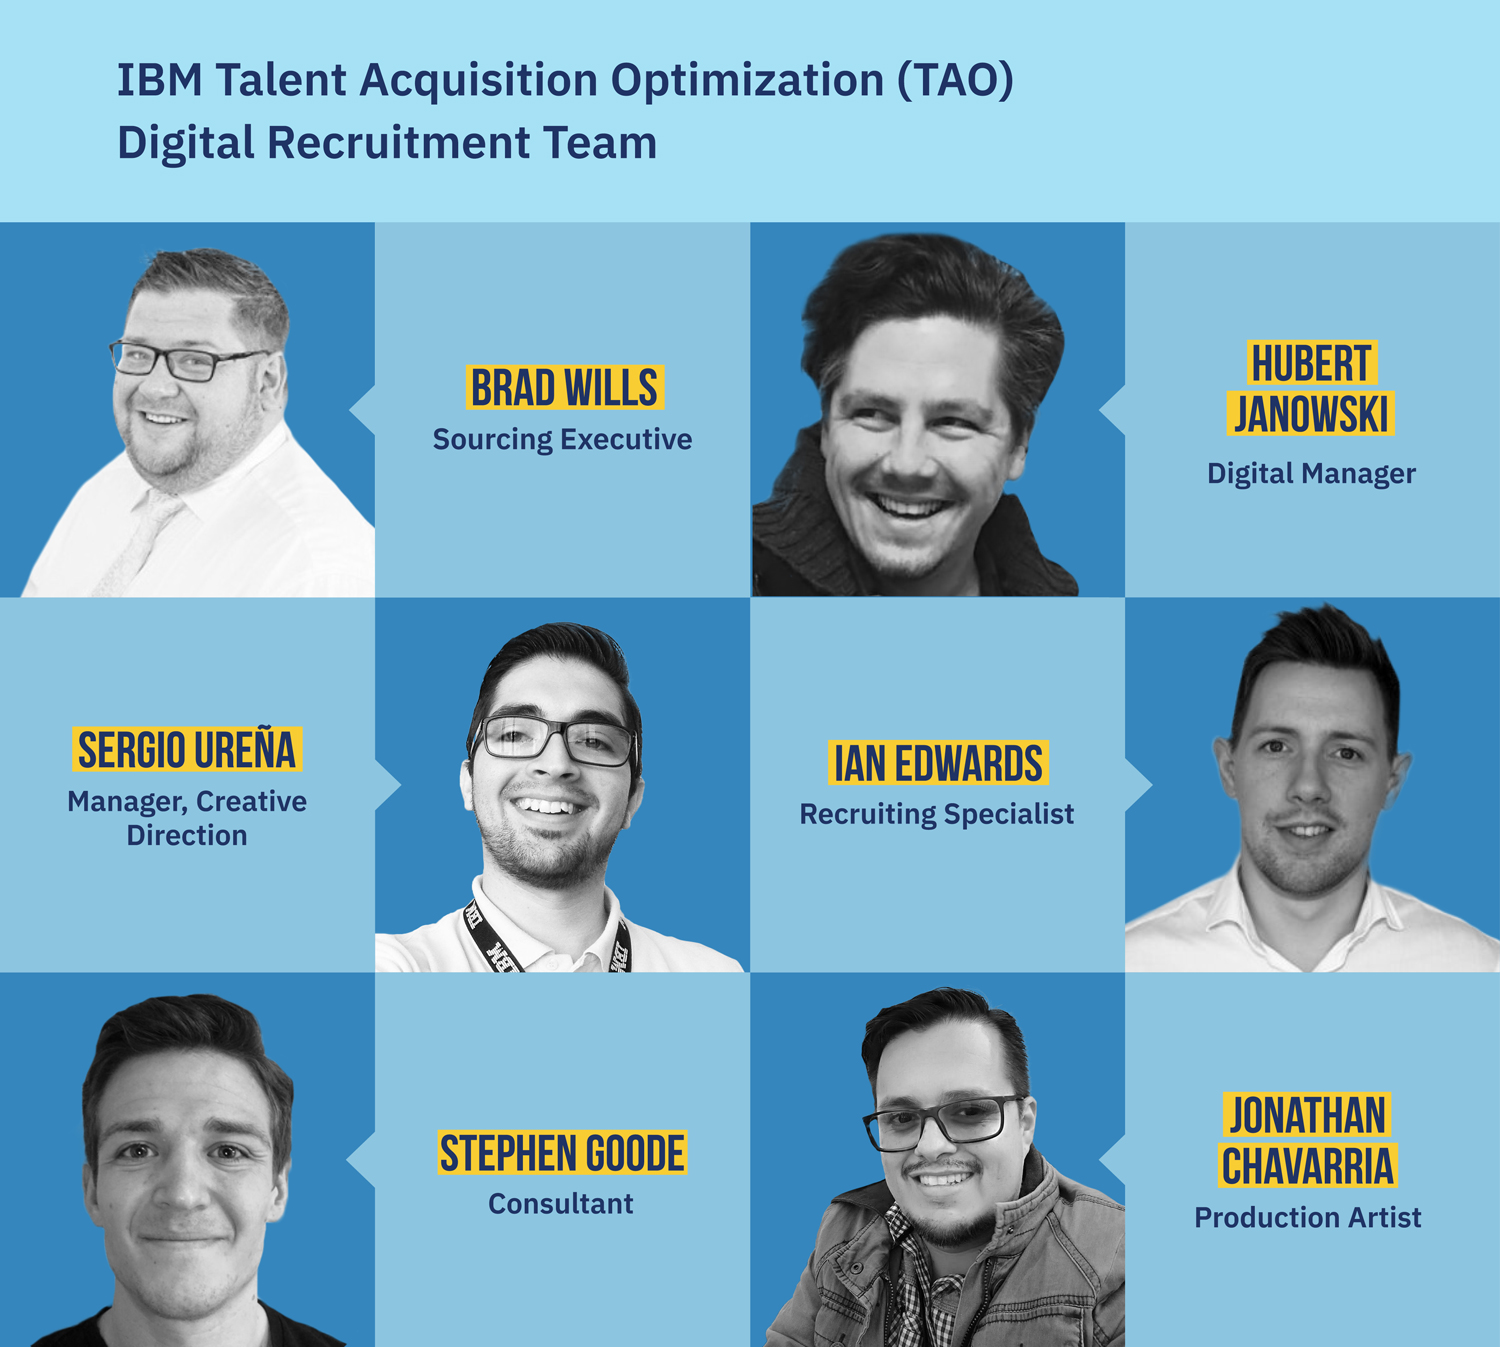 ibm talent acquisition optimization digital recruitment team recruiting strategies